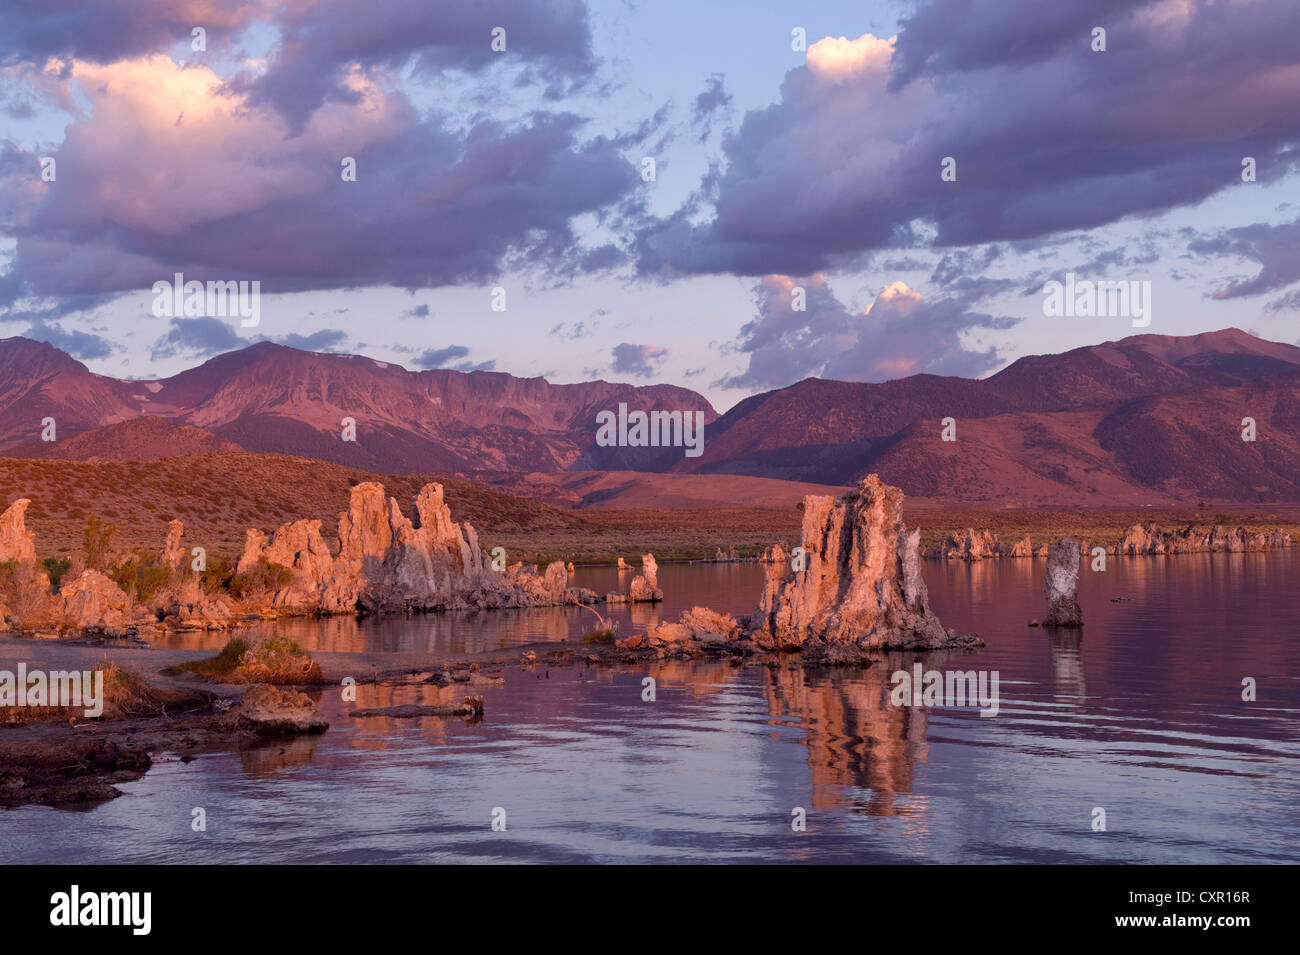 Tuffstein-Rock-Formation, mono Lake, Kalifornien, usa Stockfoto